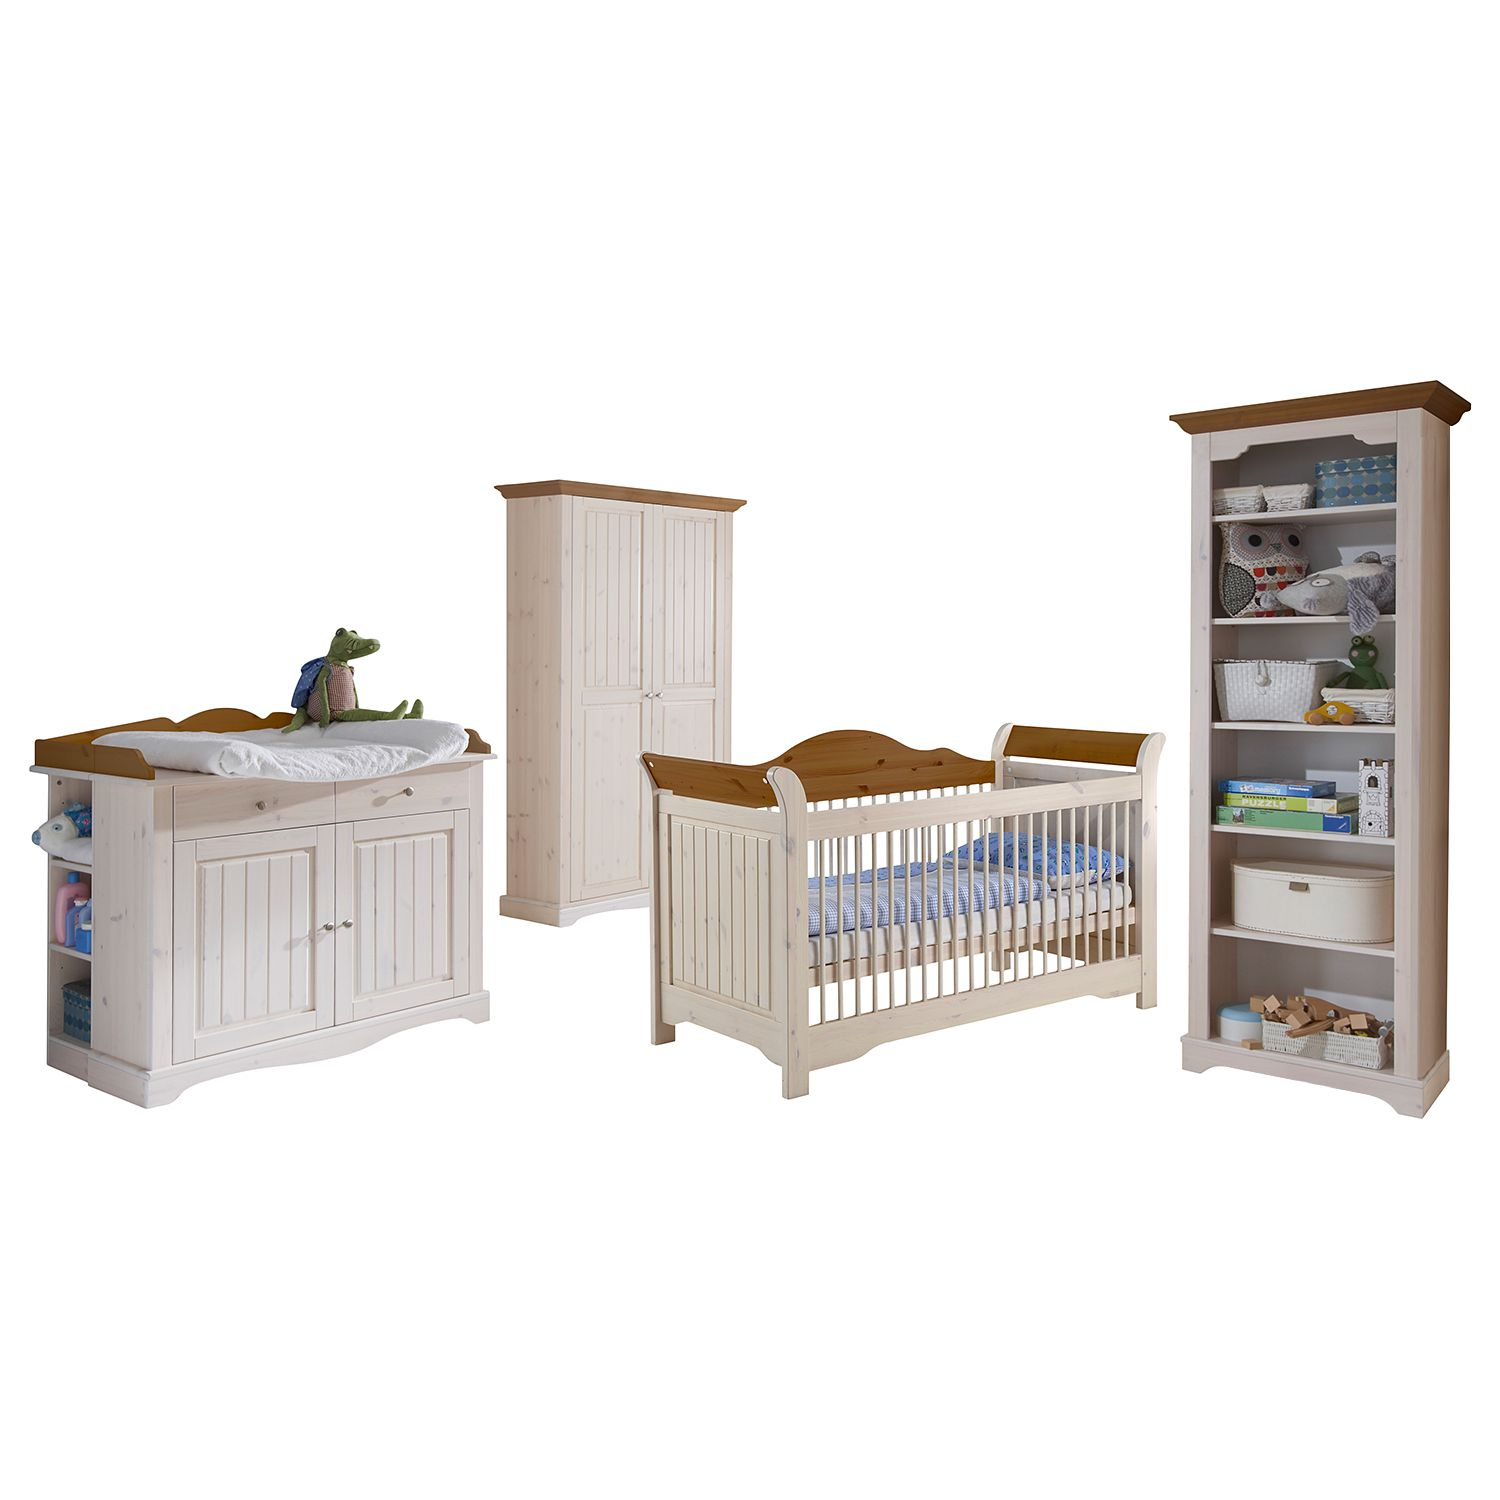 Kinderzimmerkombination Karlotta (4-tlg.) - Kiefer massiv - White Wash / Provence, Steens